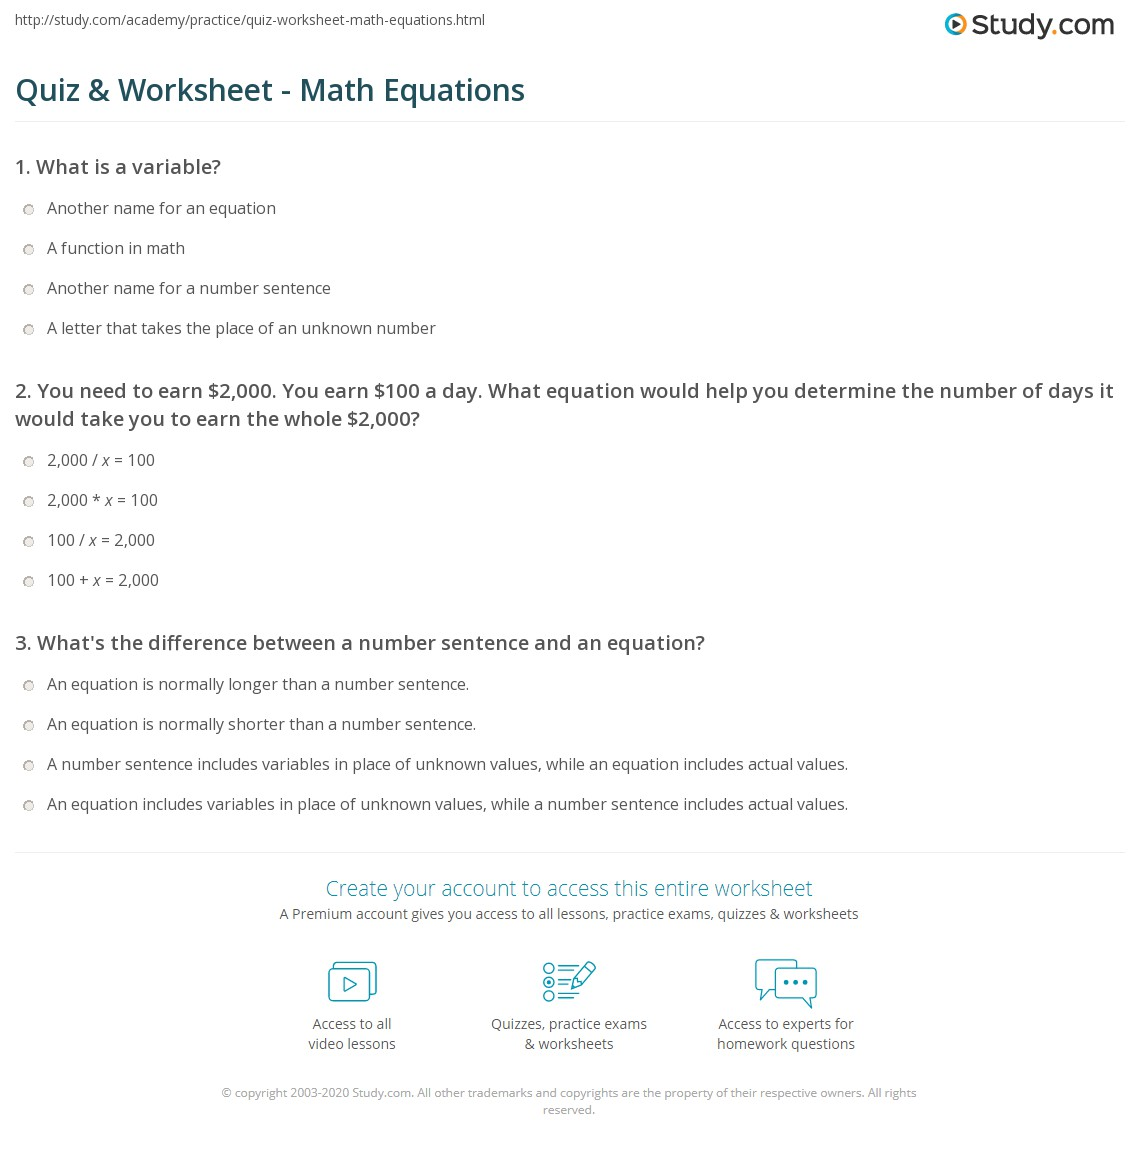 quiz & worksheet - math equations | study